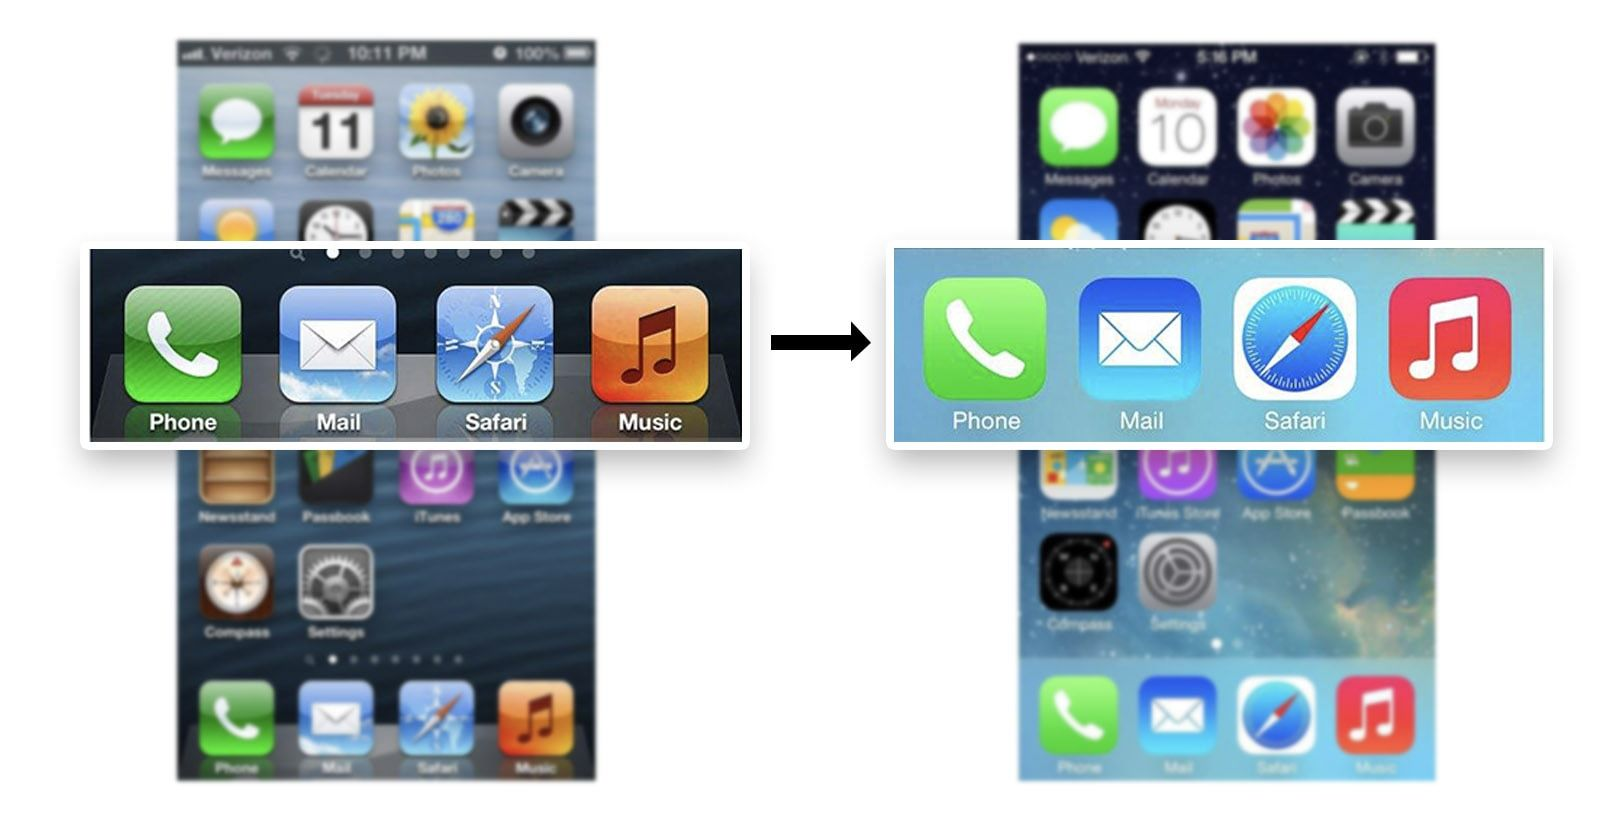 iPhone ios 6 verses ios 7 change to flat UI